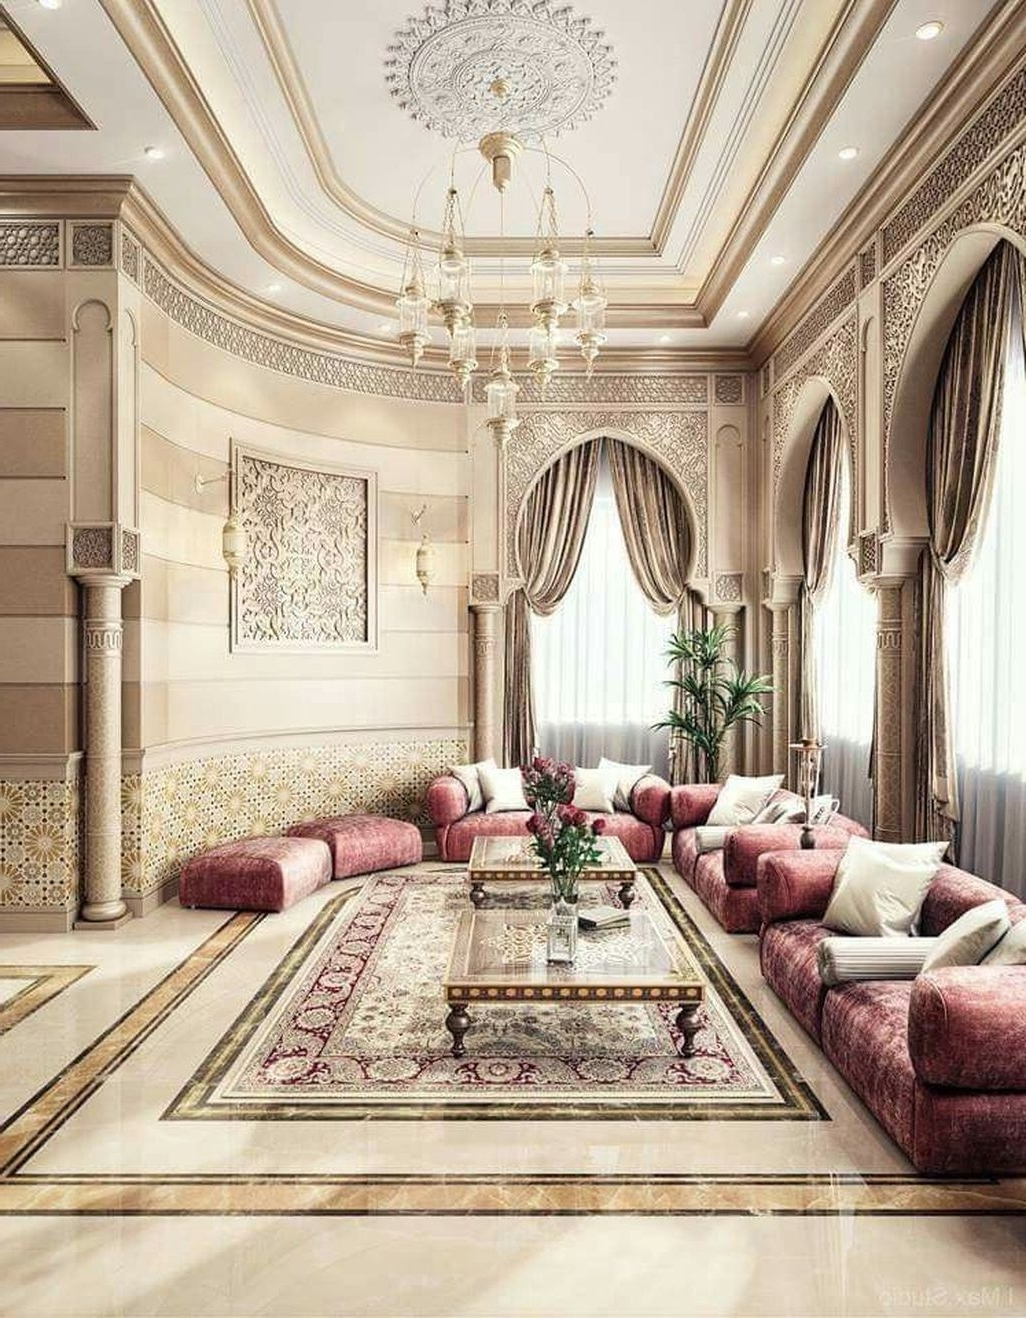 40 Best Ideas For Moroccan Dining Room Décor Zyhomy 20+ Arabian Dining Room Decor Inspirations